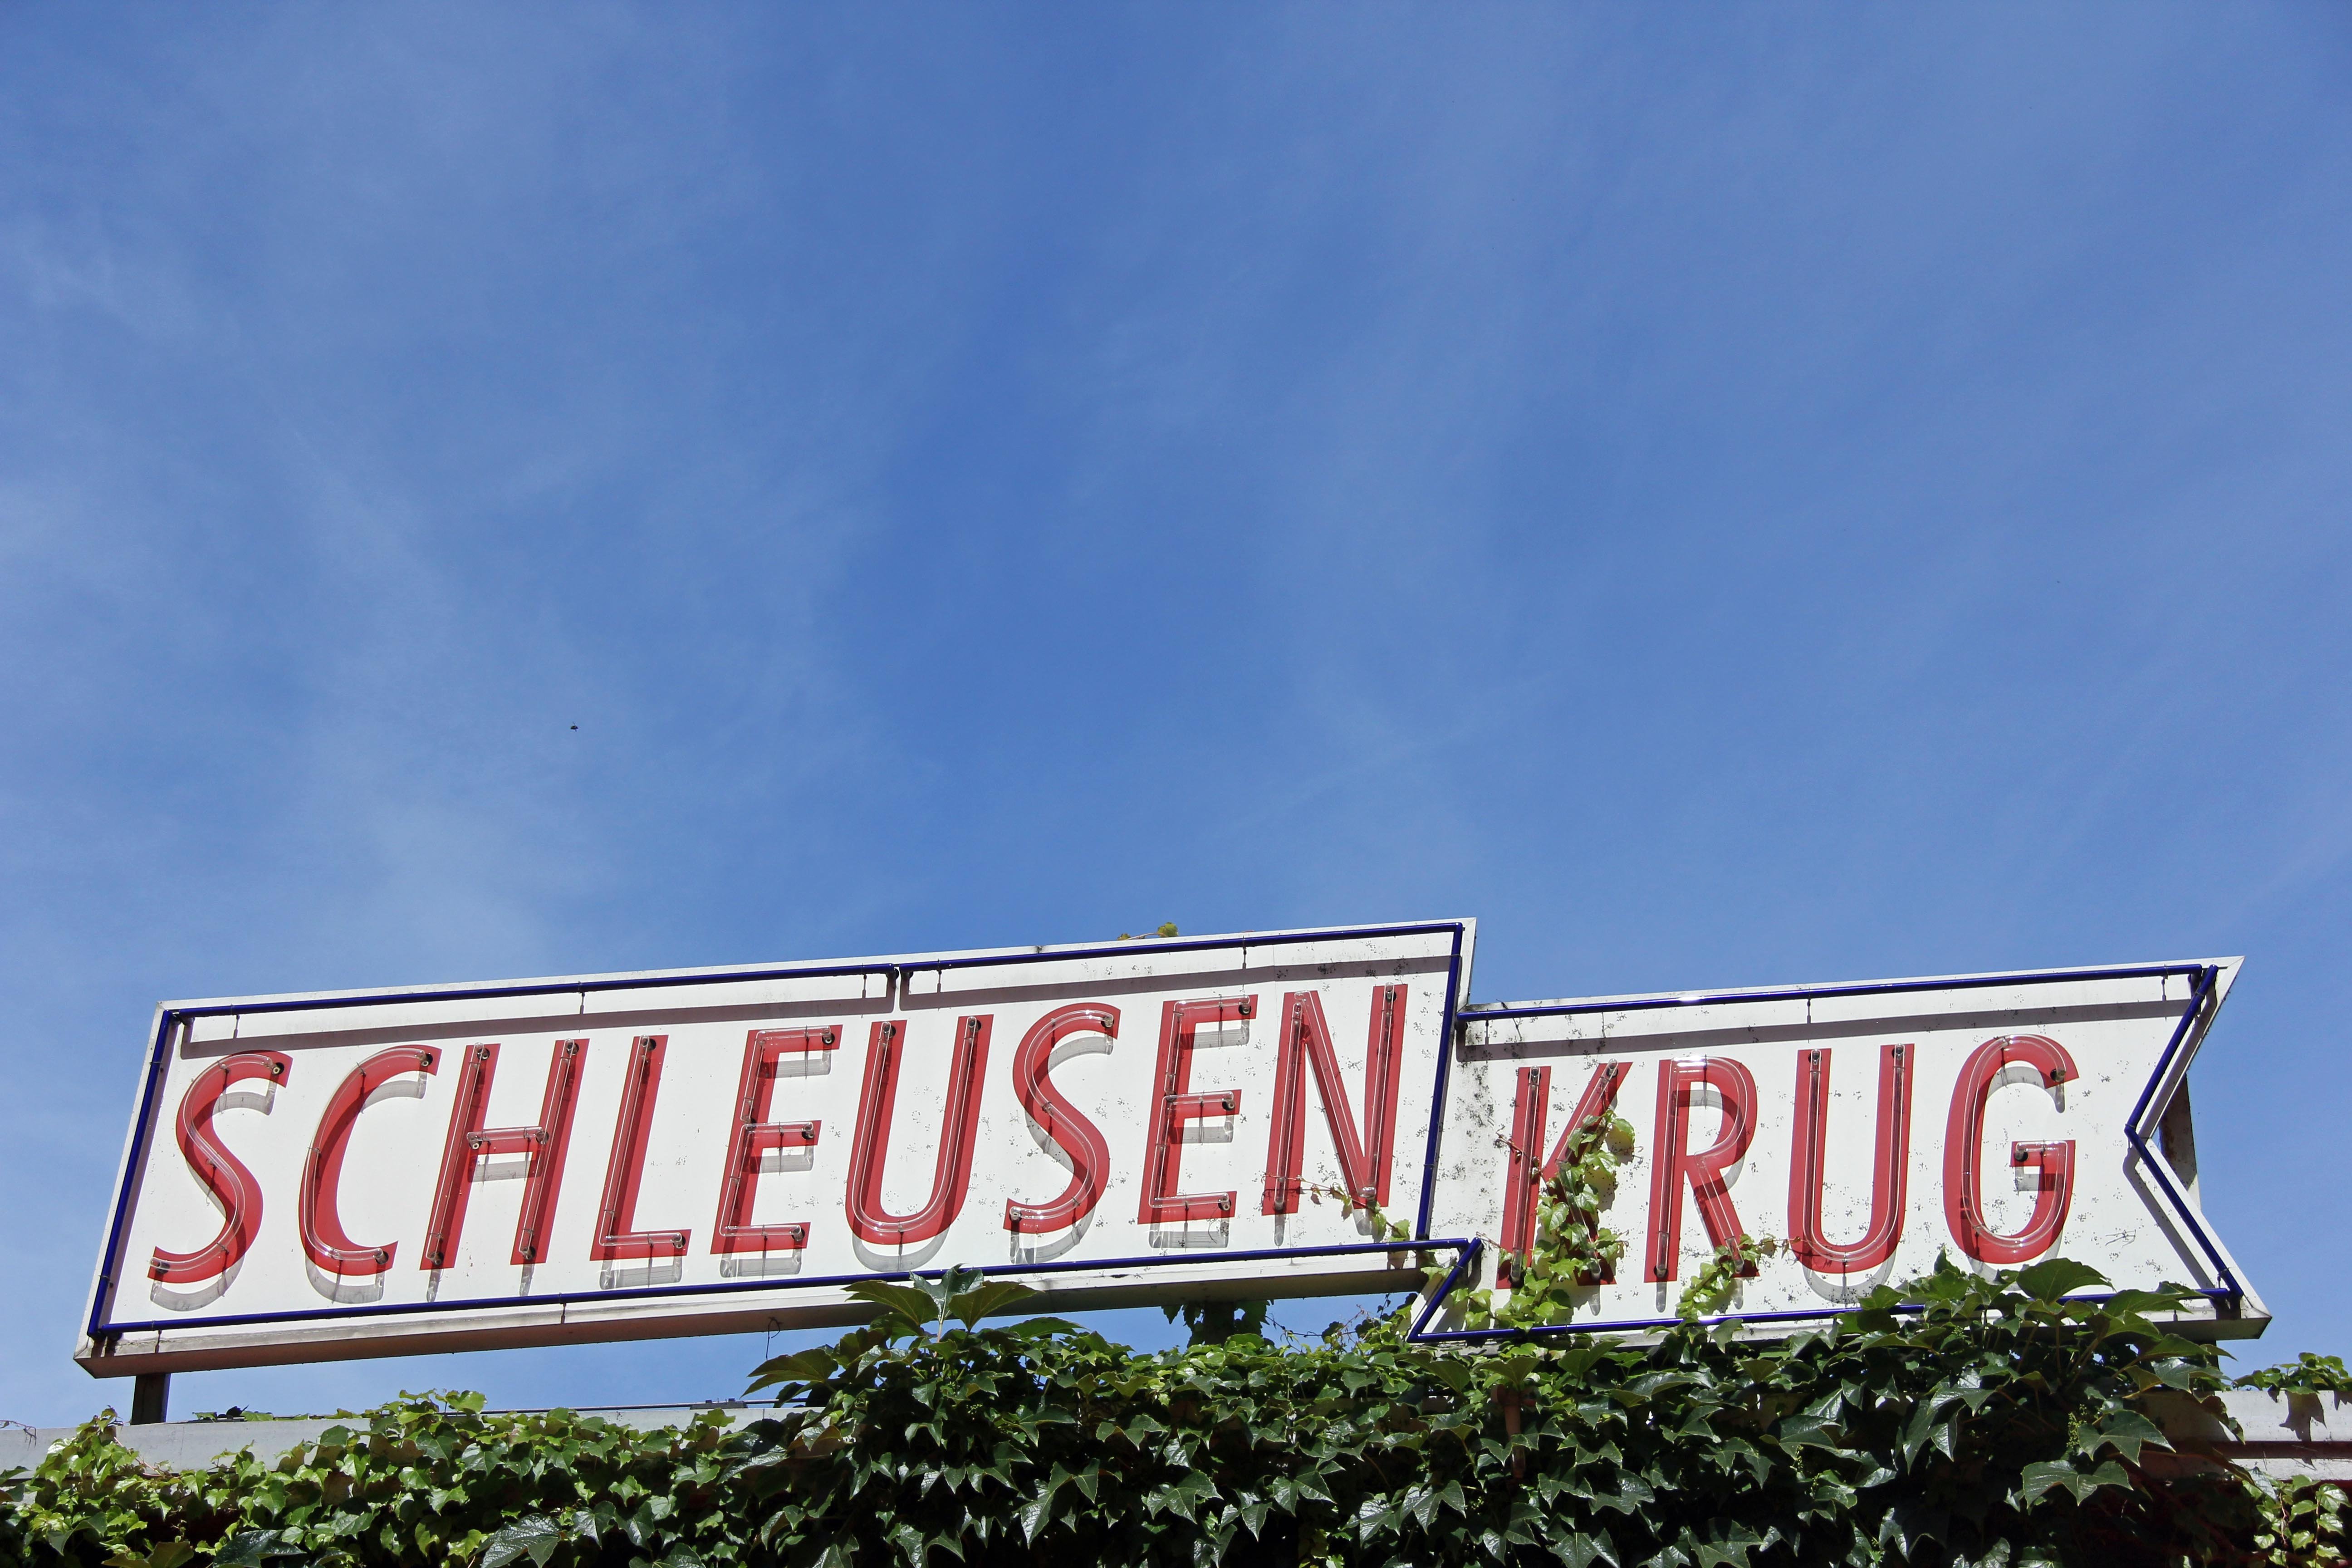 The sign of Schleusenkrug, a Biergarten in the Tiergarten in Berlin